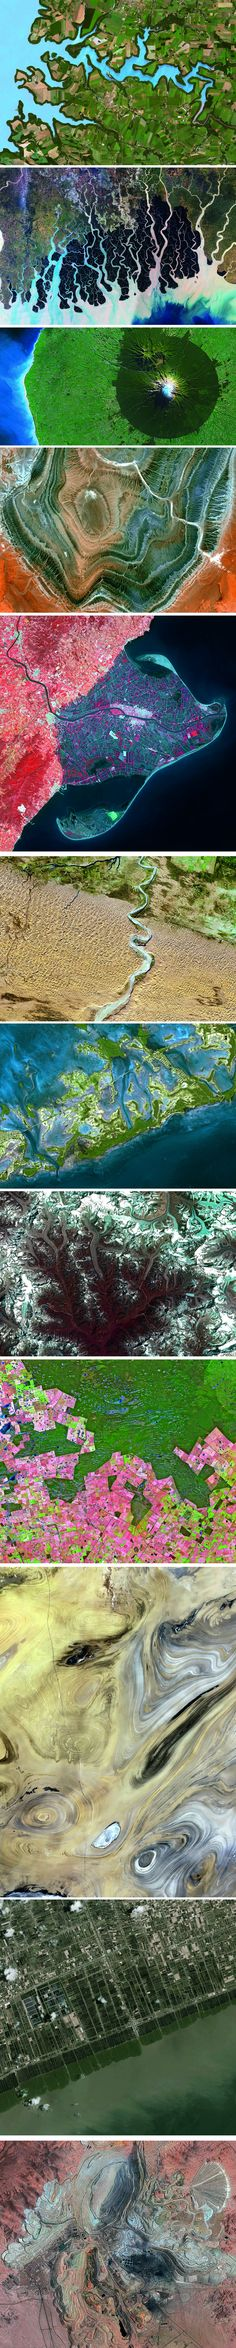 Earth from Space, by Yann Arthus-Bertrand, published by Abrams.